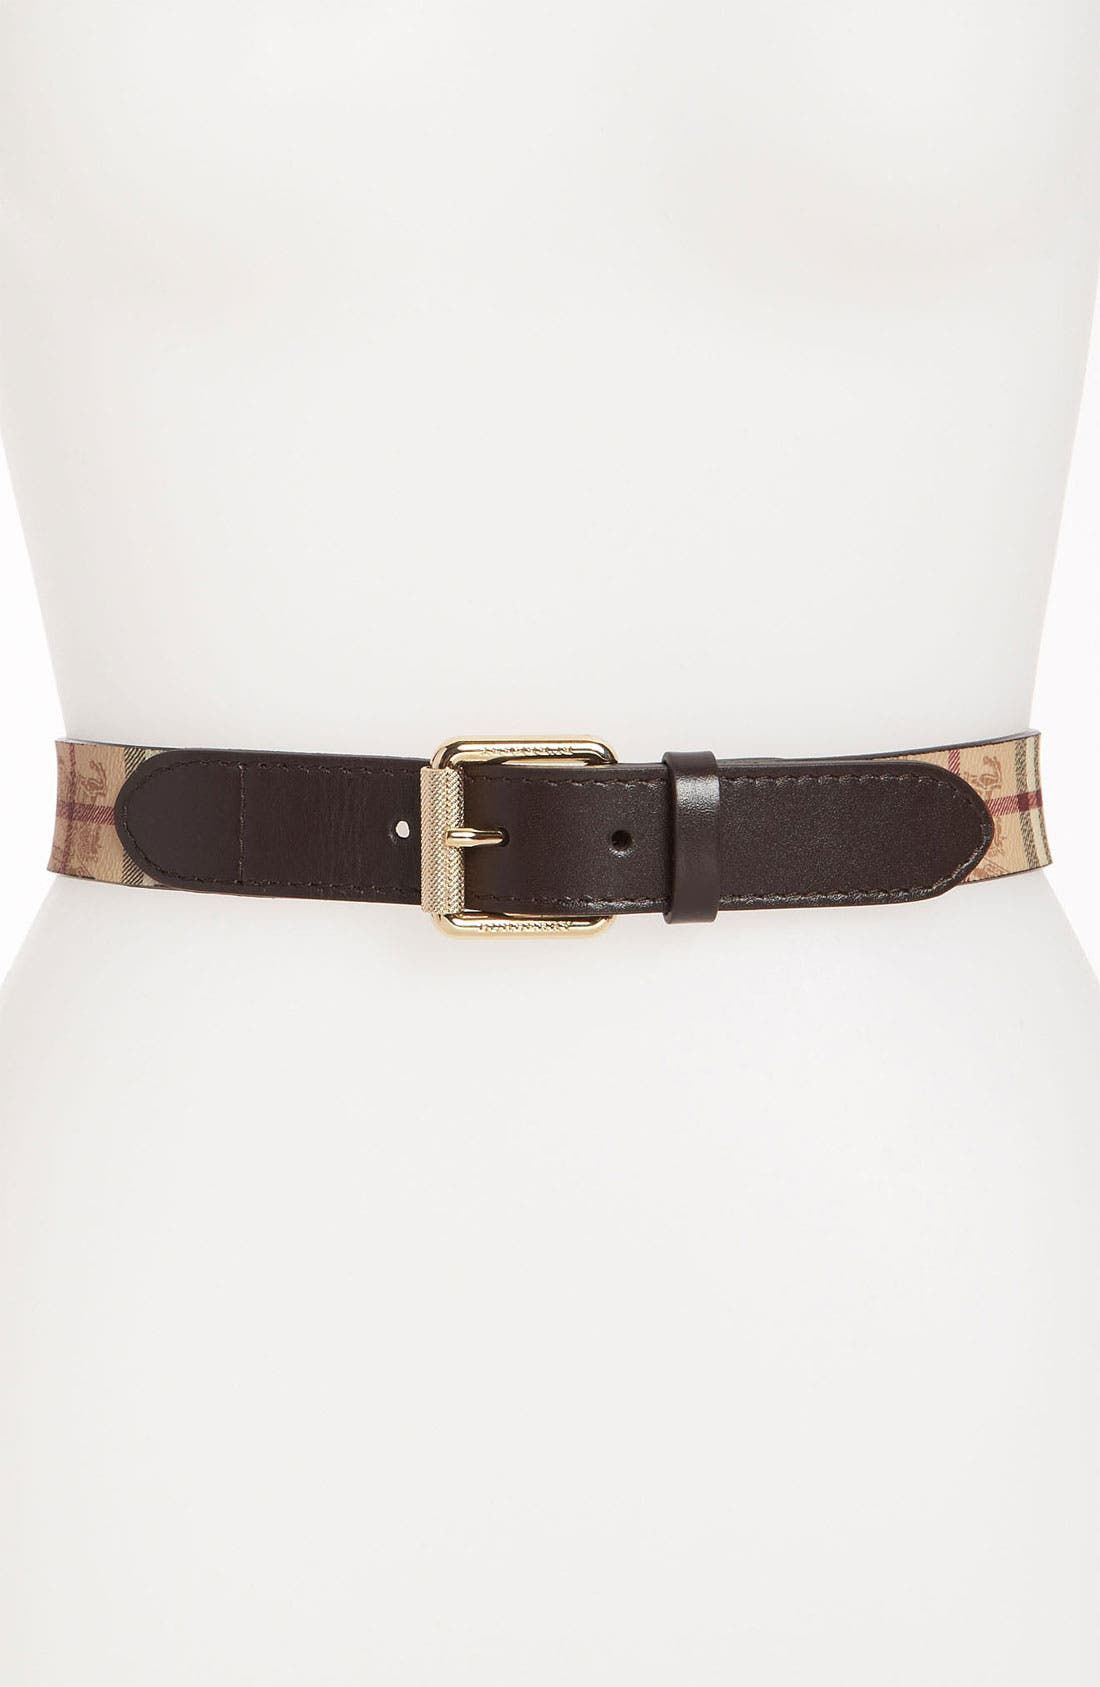 Alternate Image 1 Selected - Burberry 'Colchester' Belt